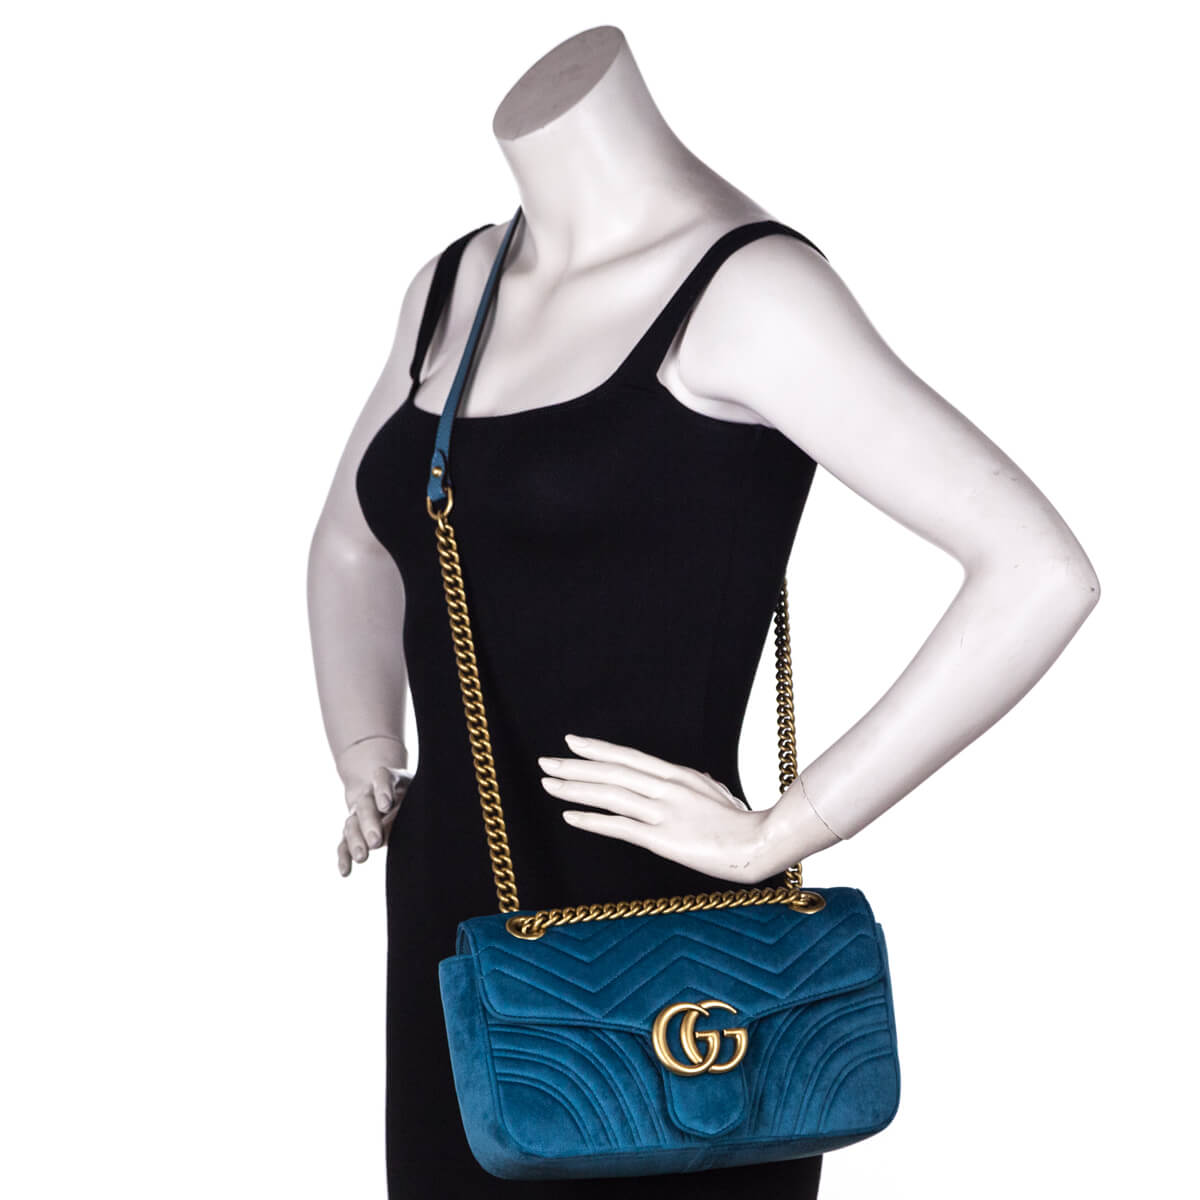 8313323ea41 ... Gucci Petrol Blue Velvet Small GG Marmont Shoulder Bag - LOVE that BAG  - Preowned Authentic ...